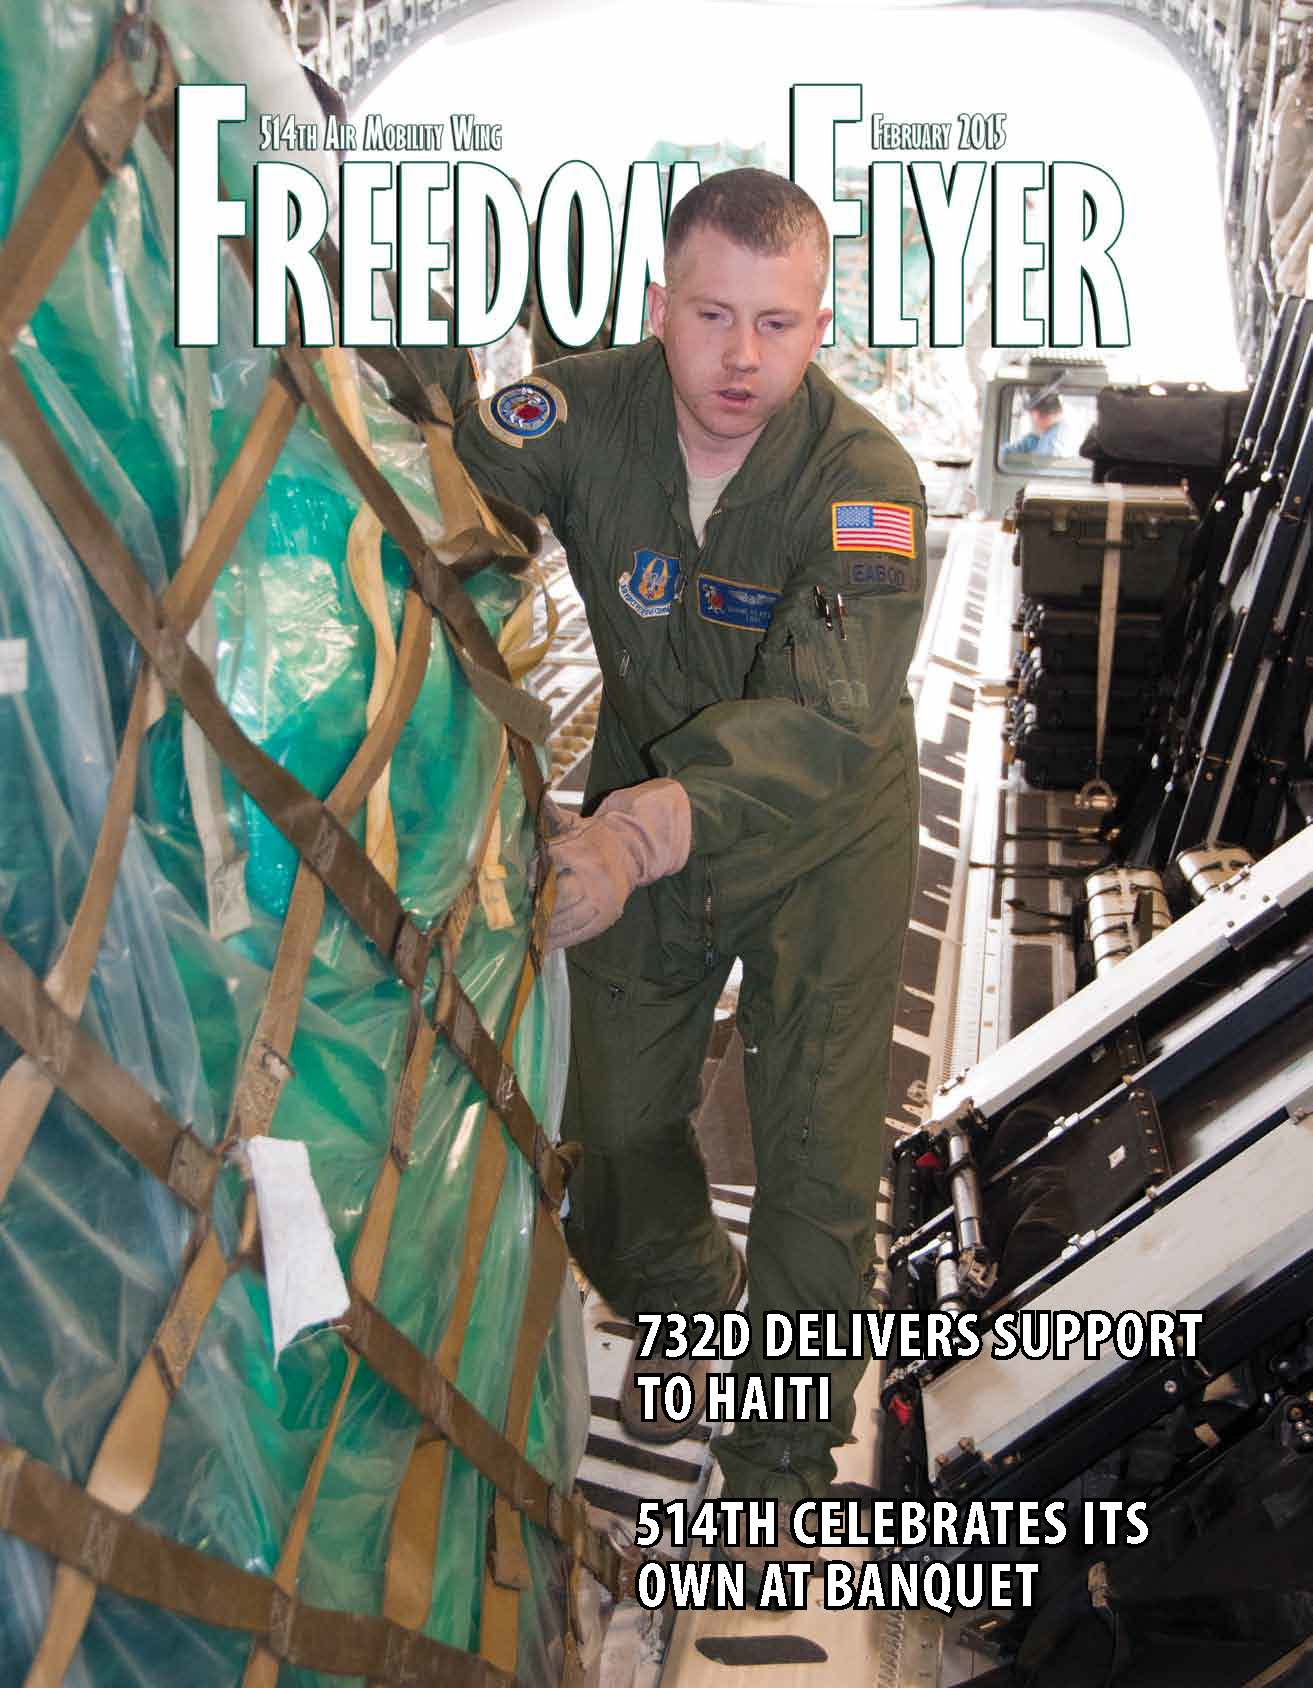 Freedom Flyer - February 2015